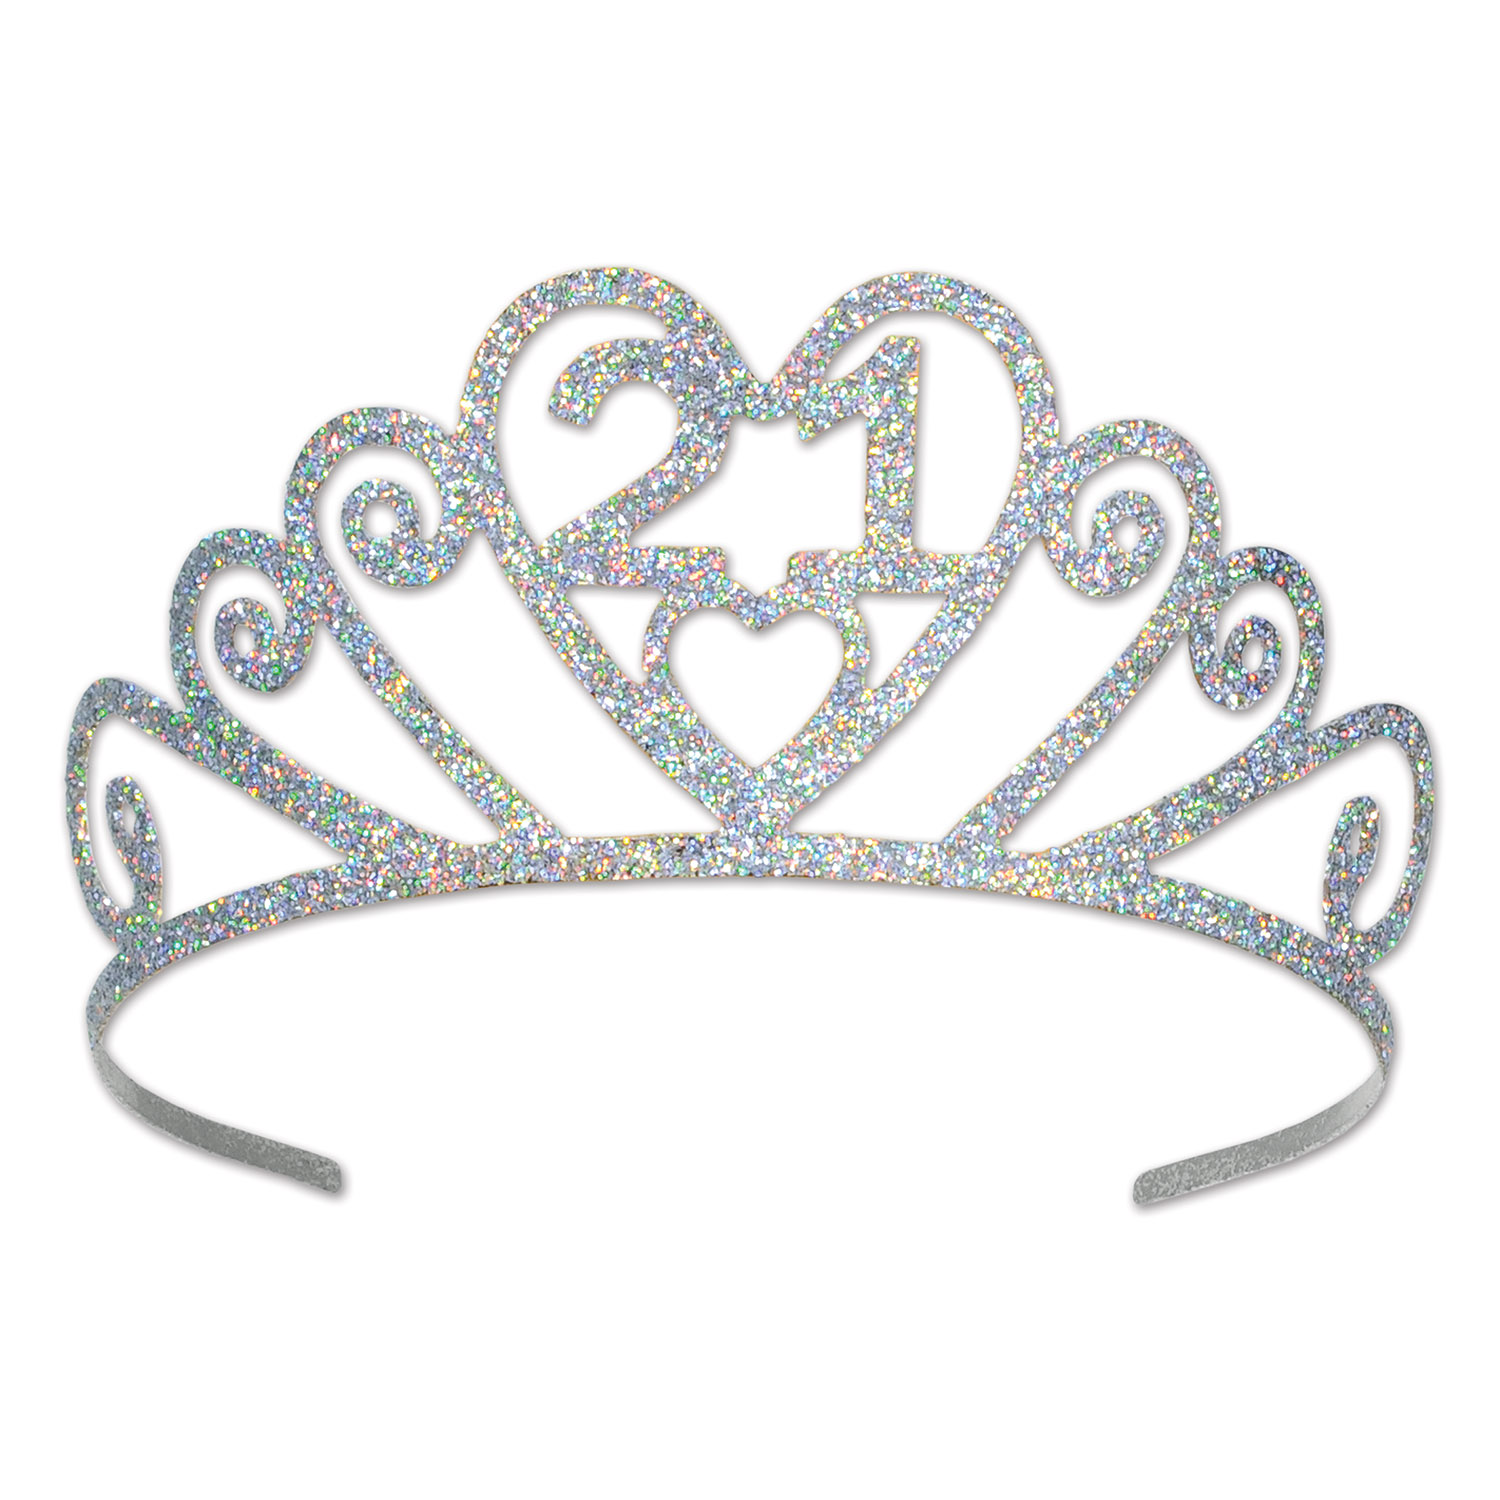 Beistle 60633-21 Glittered 21 Tiara - Lot de 6 - image 1 de 1